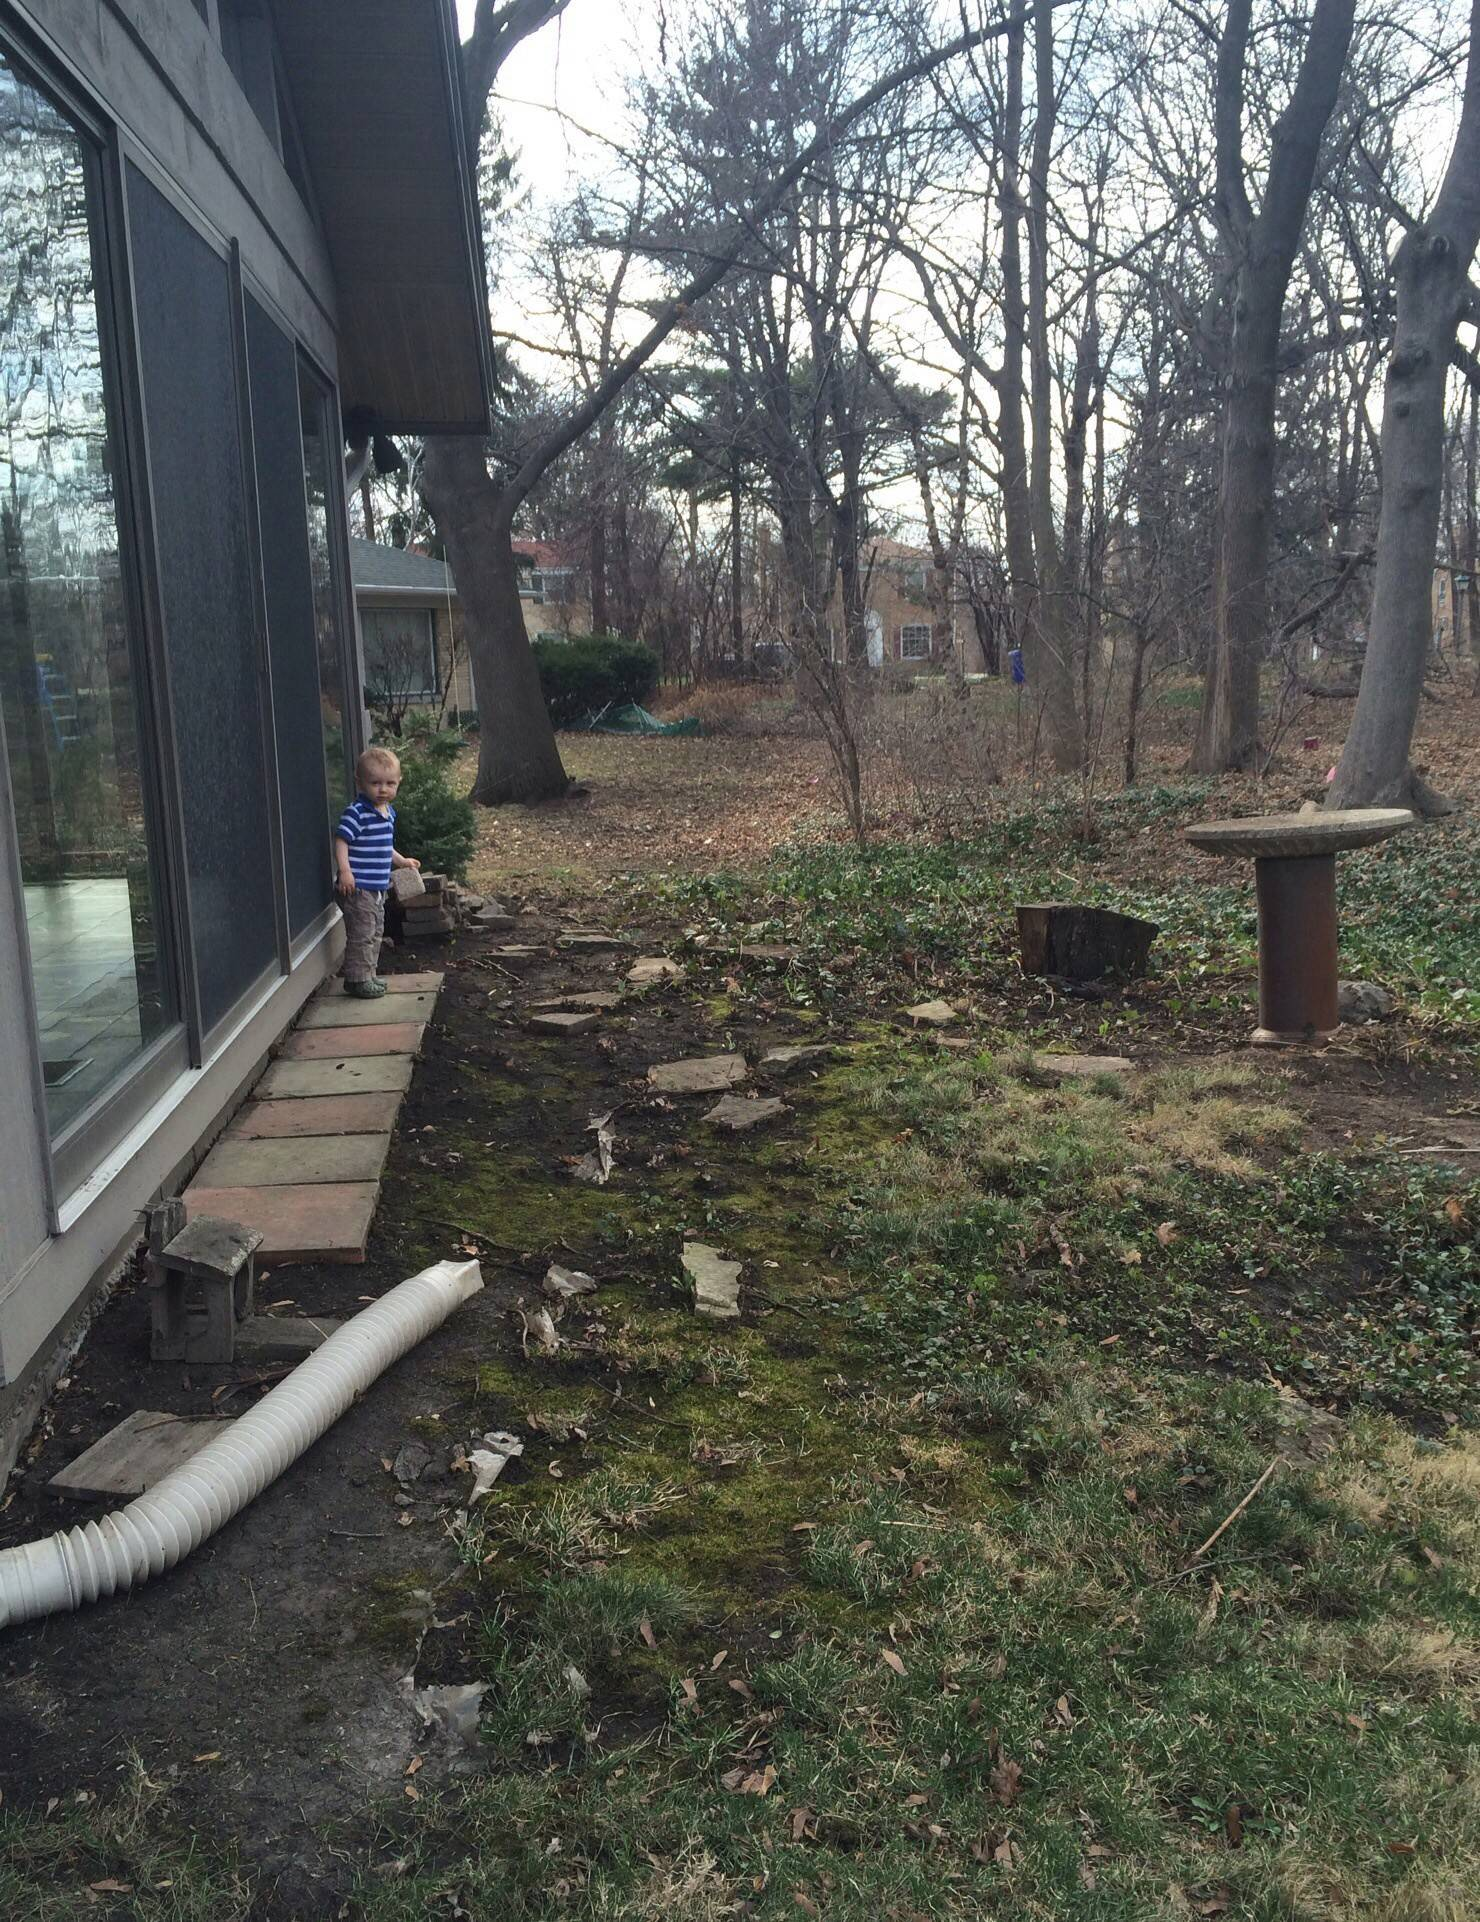 Beth Schirott of Wheaton says her backyard has potential.